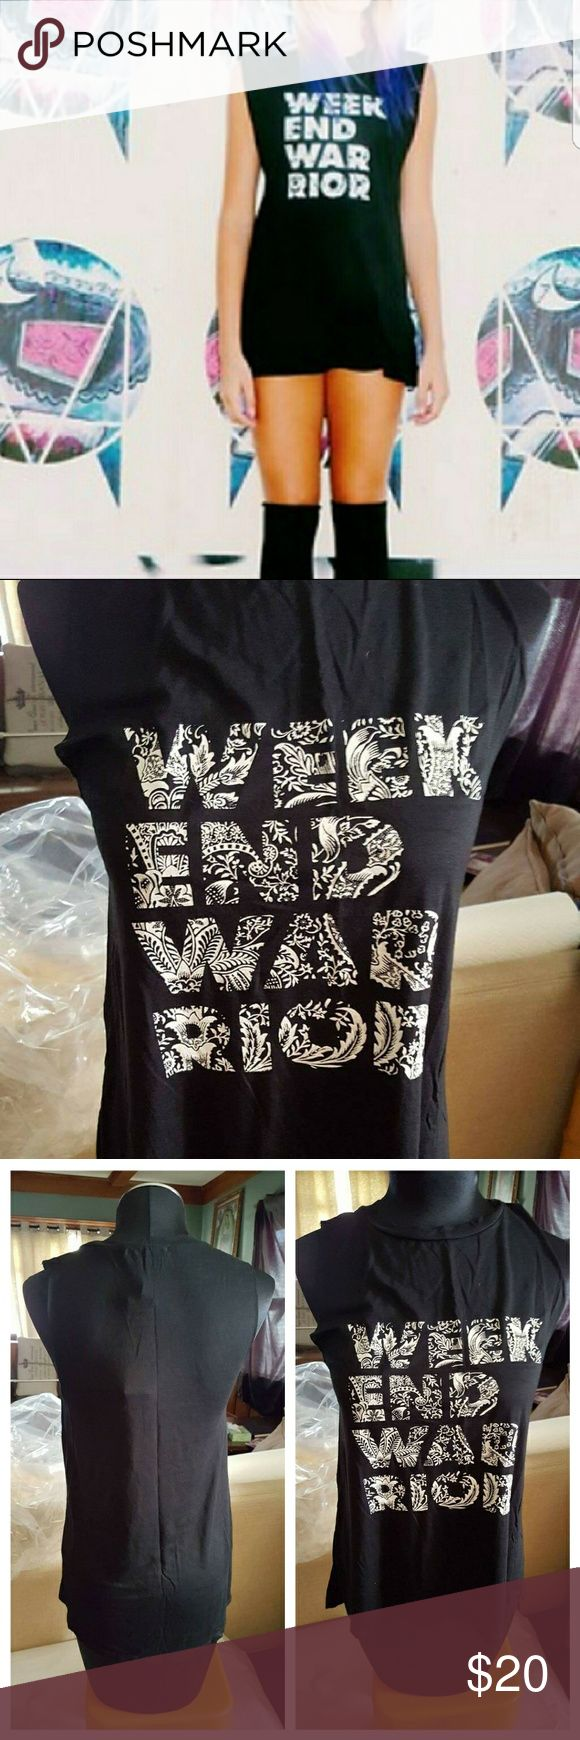 New BCBGeneration Week End War Rior Tank New Beautiful Bcbgeneratio Week End War Rior Tank  It's a must Have Tank   SIZE Small  I do bundle and offers are welcome BCBGeneration Tops Tees - Short Sleeve